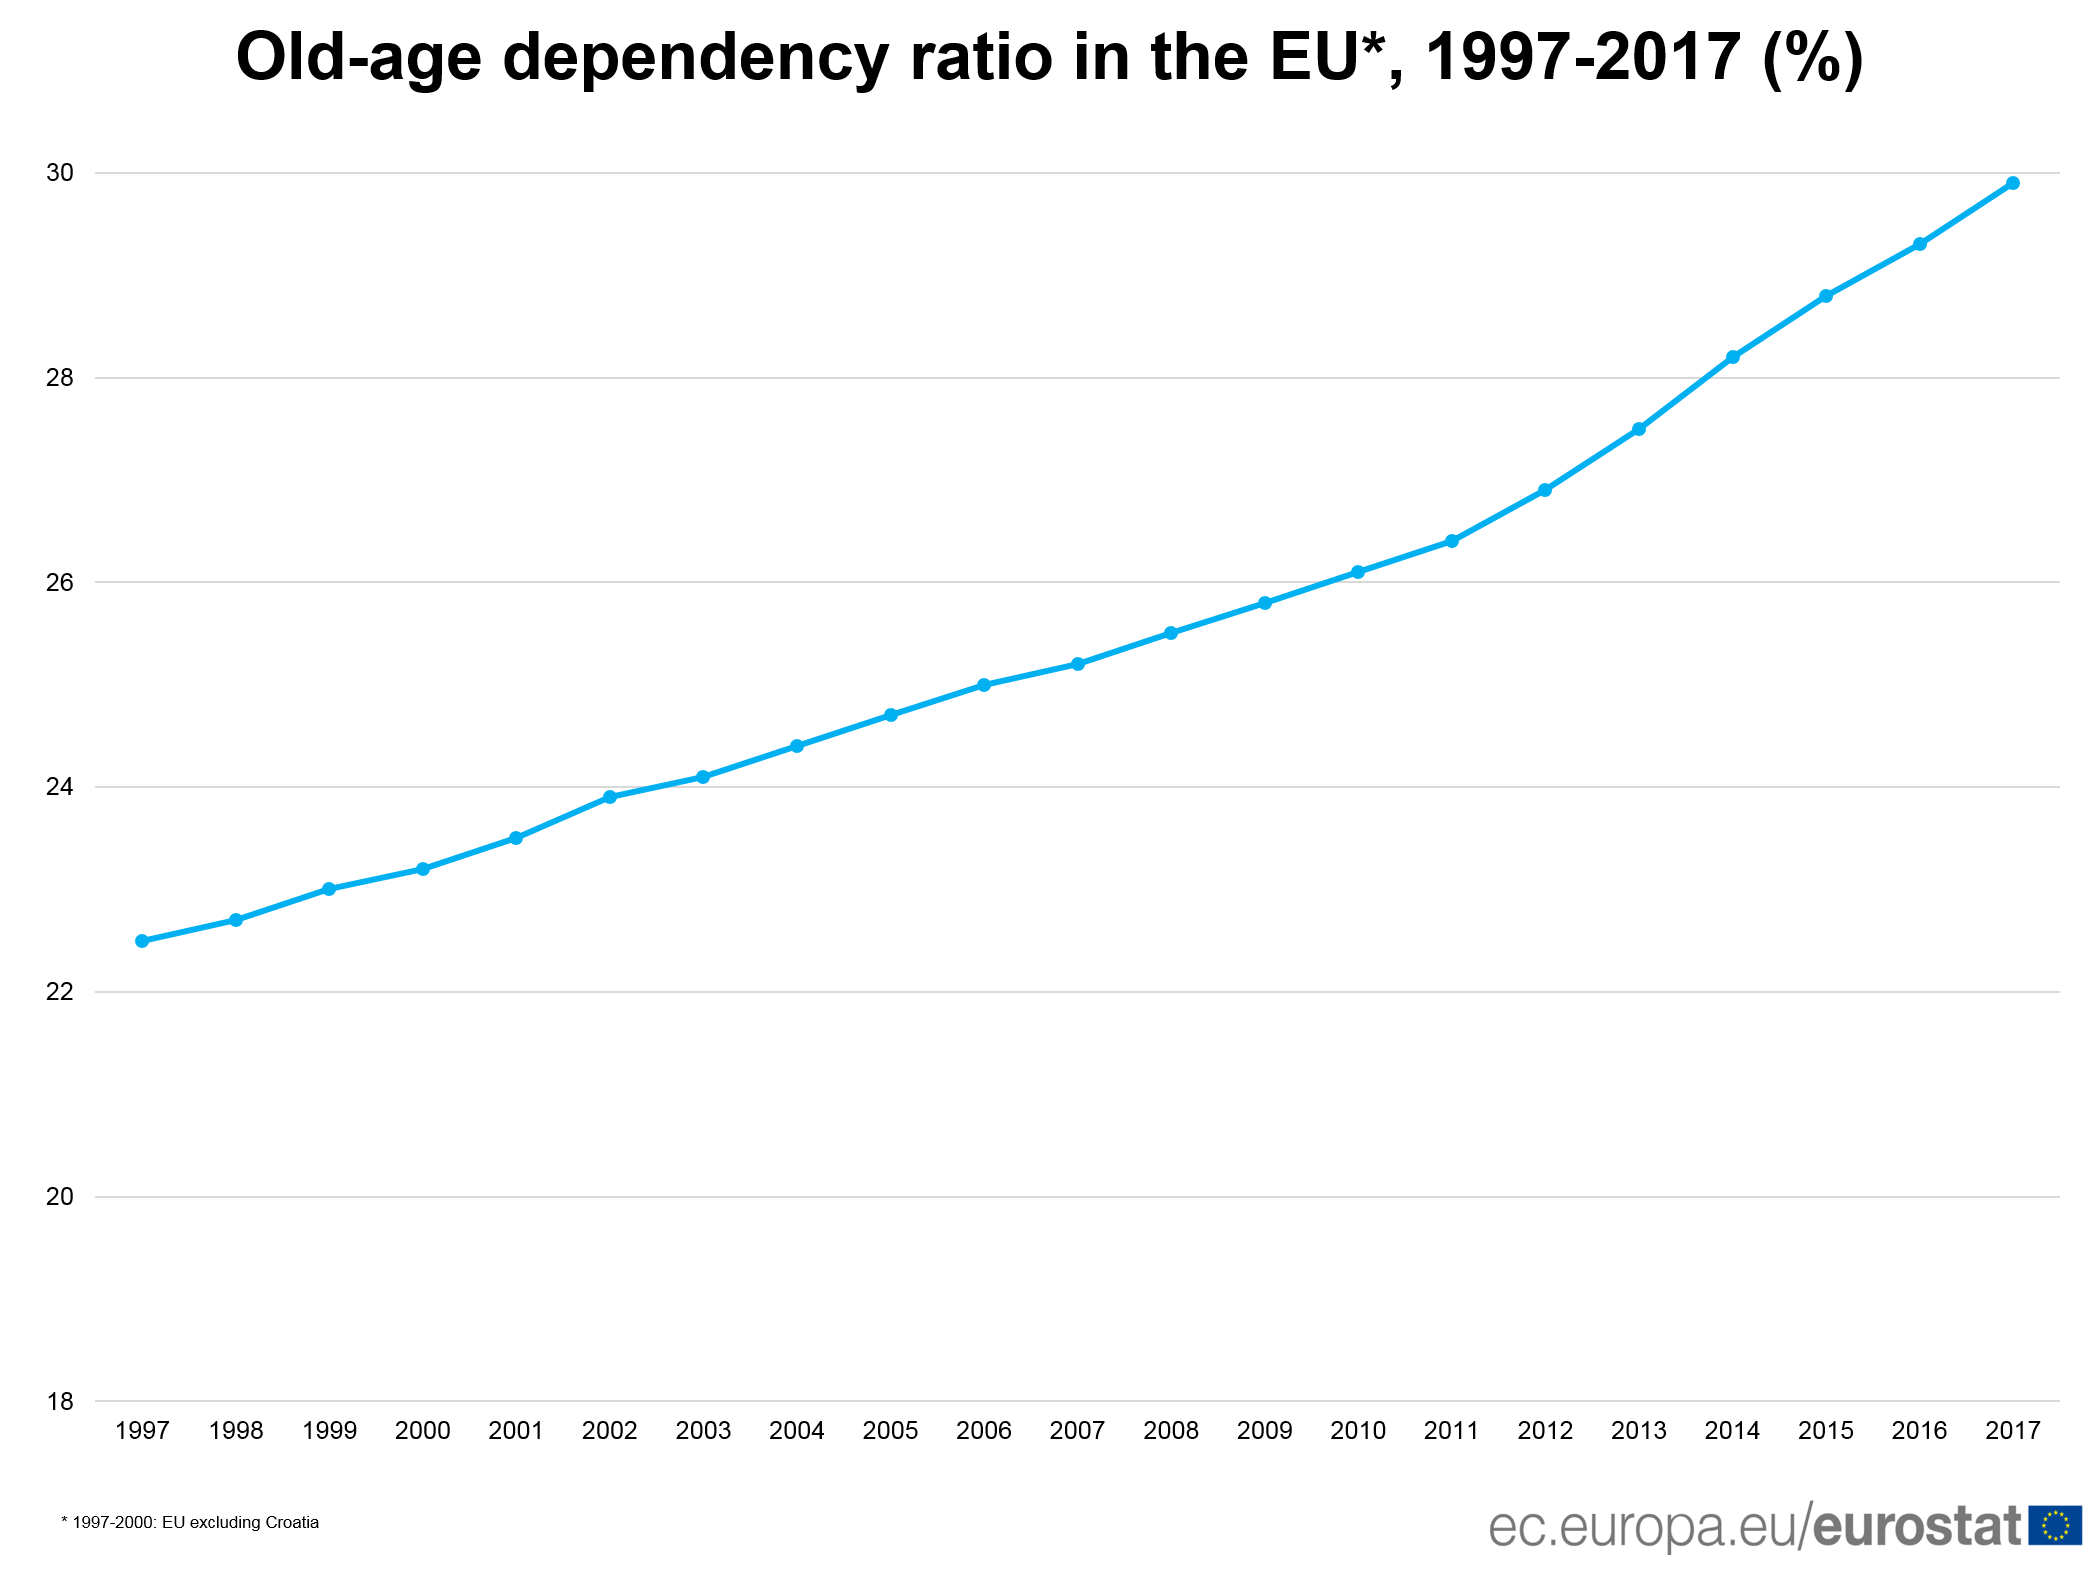 Old-age dependency ratio in the EU, 1997-2017